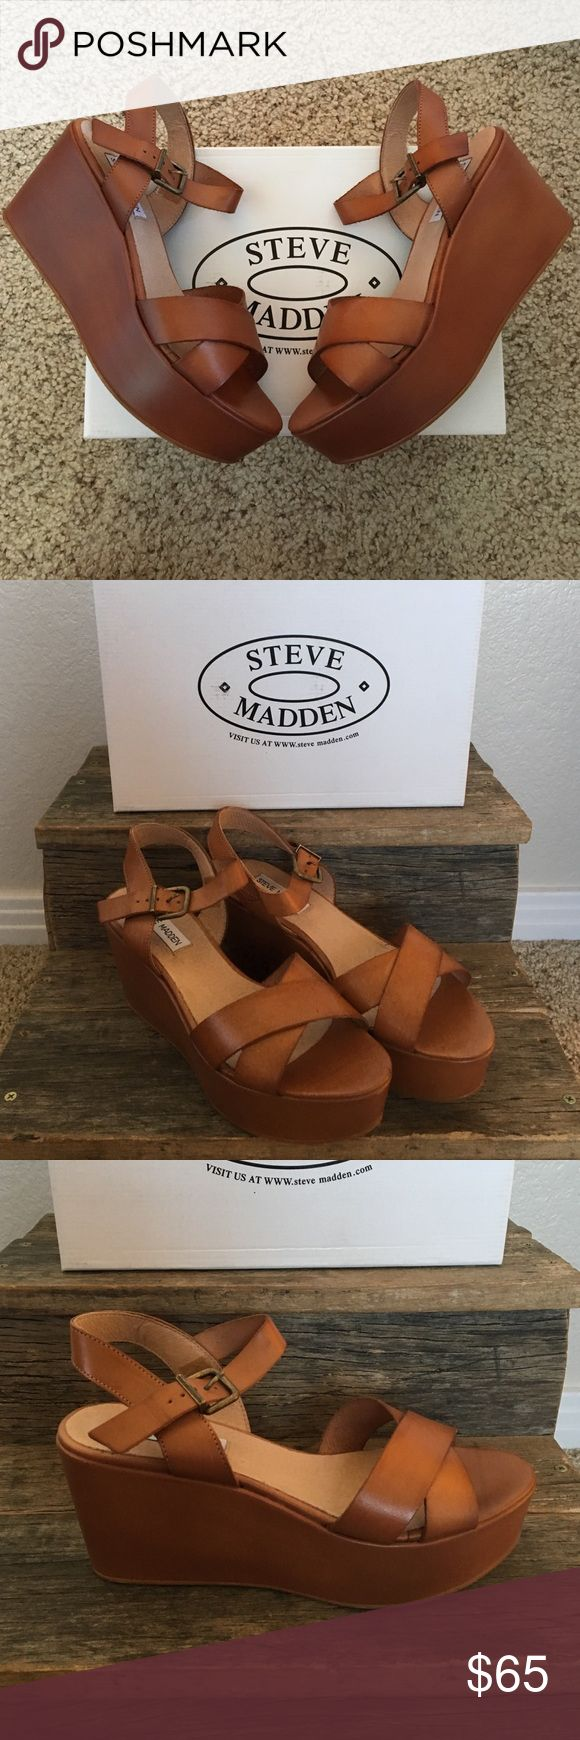 Steve Madden-Turks Cognac OMG!! This shoe would look great with anything... skinny jeans, shorts, dresses... you name it!! Beautiful platform sandal with tan leather straps! Steve Madden Shoes Platforms